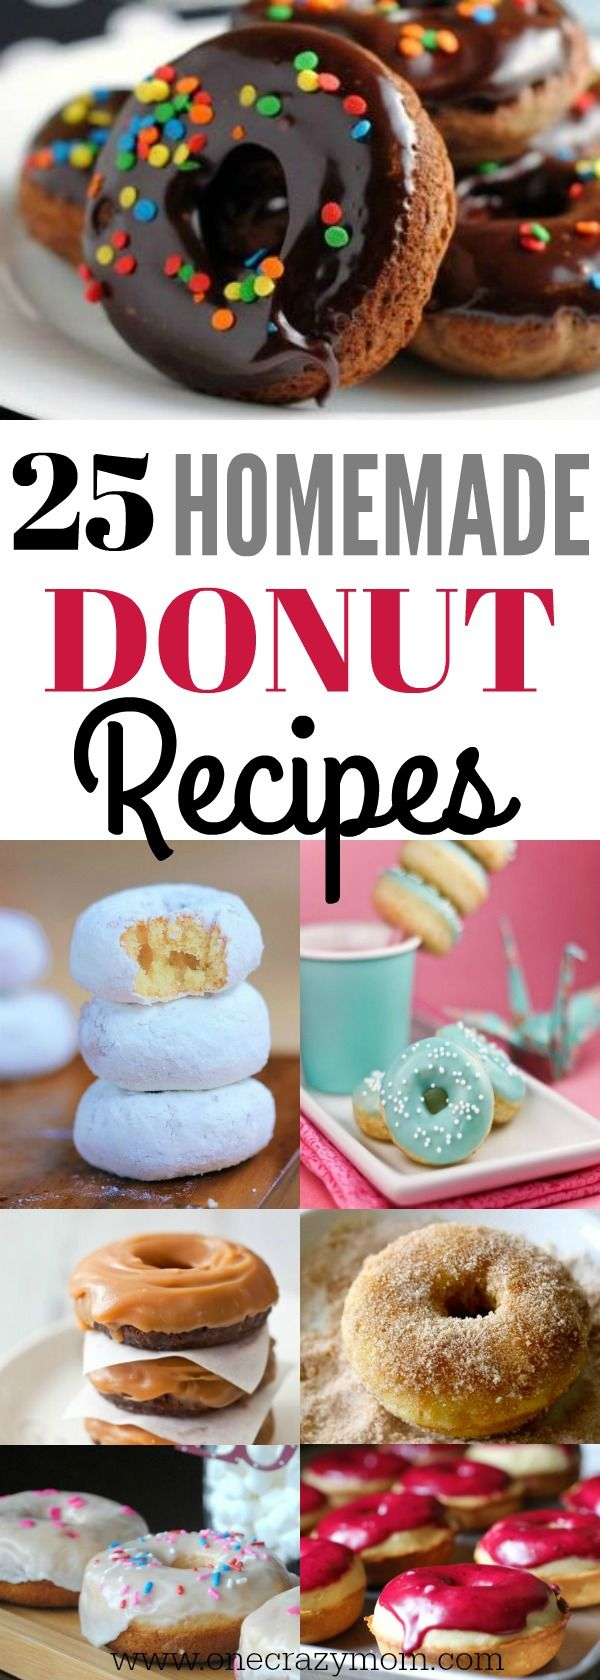 Try these mouthwatering homemade donuts.25 simple doughnut recipes you will love. Homemade donut recipes are so much better.Try these easy donut recipes.